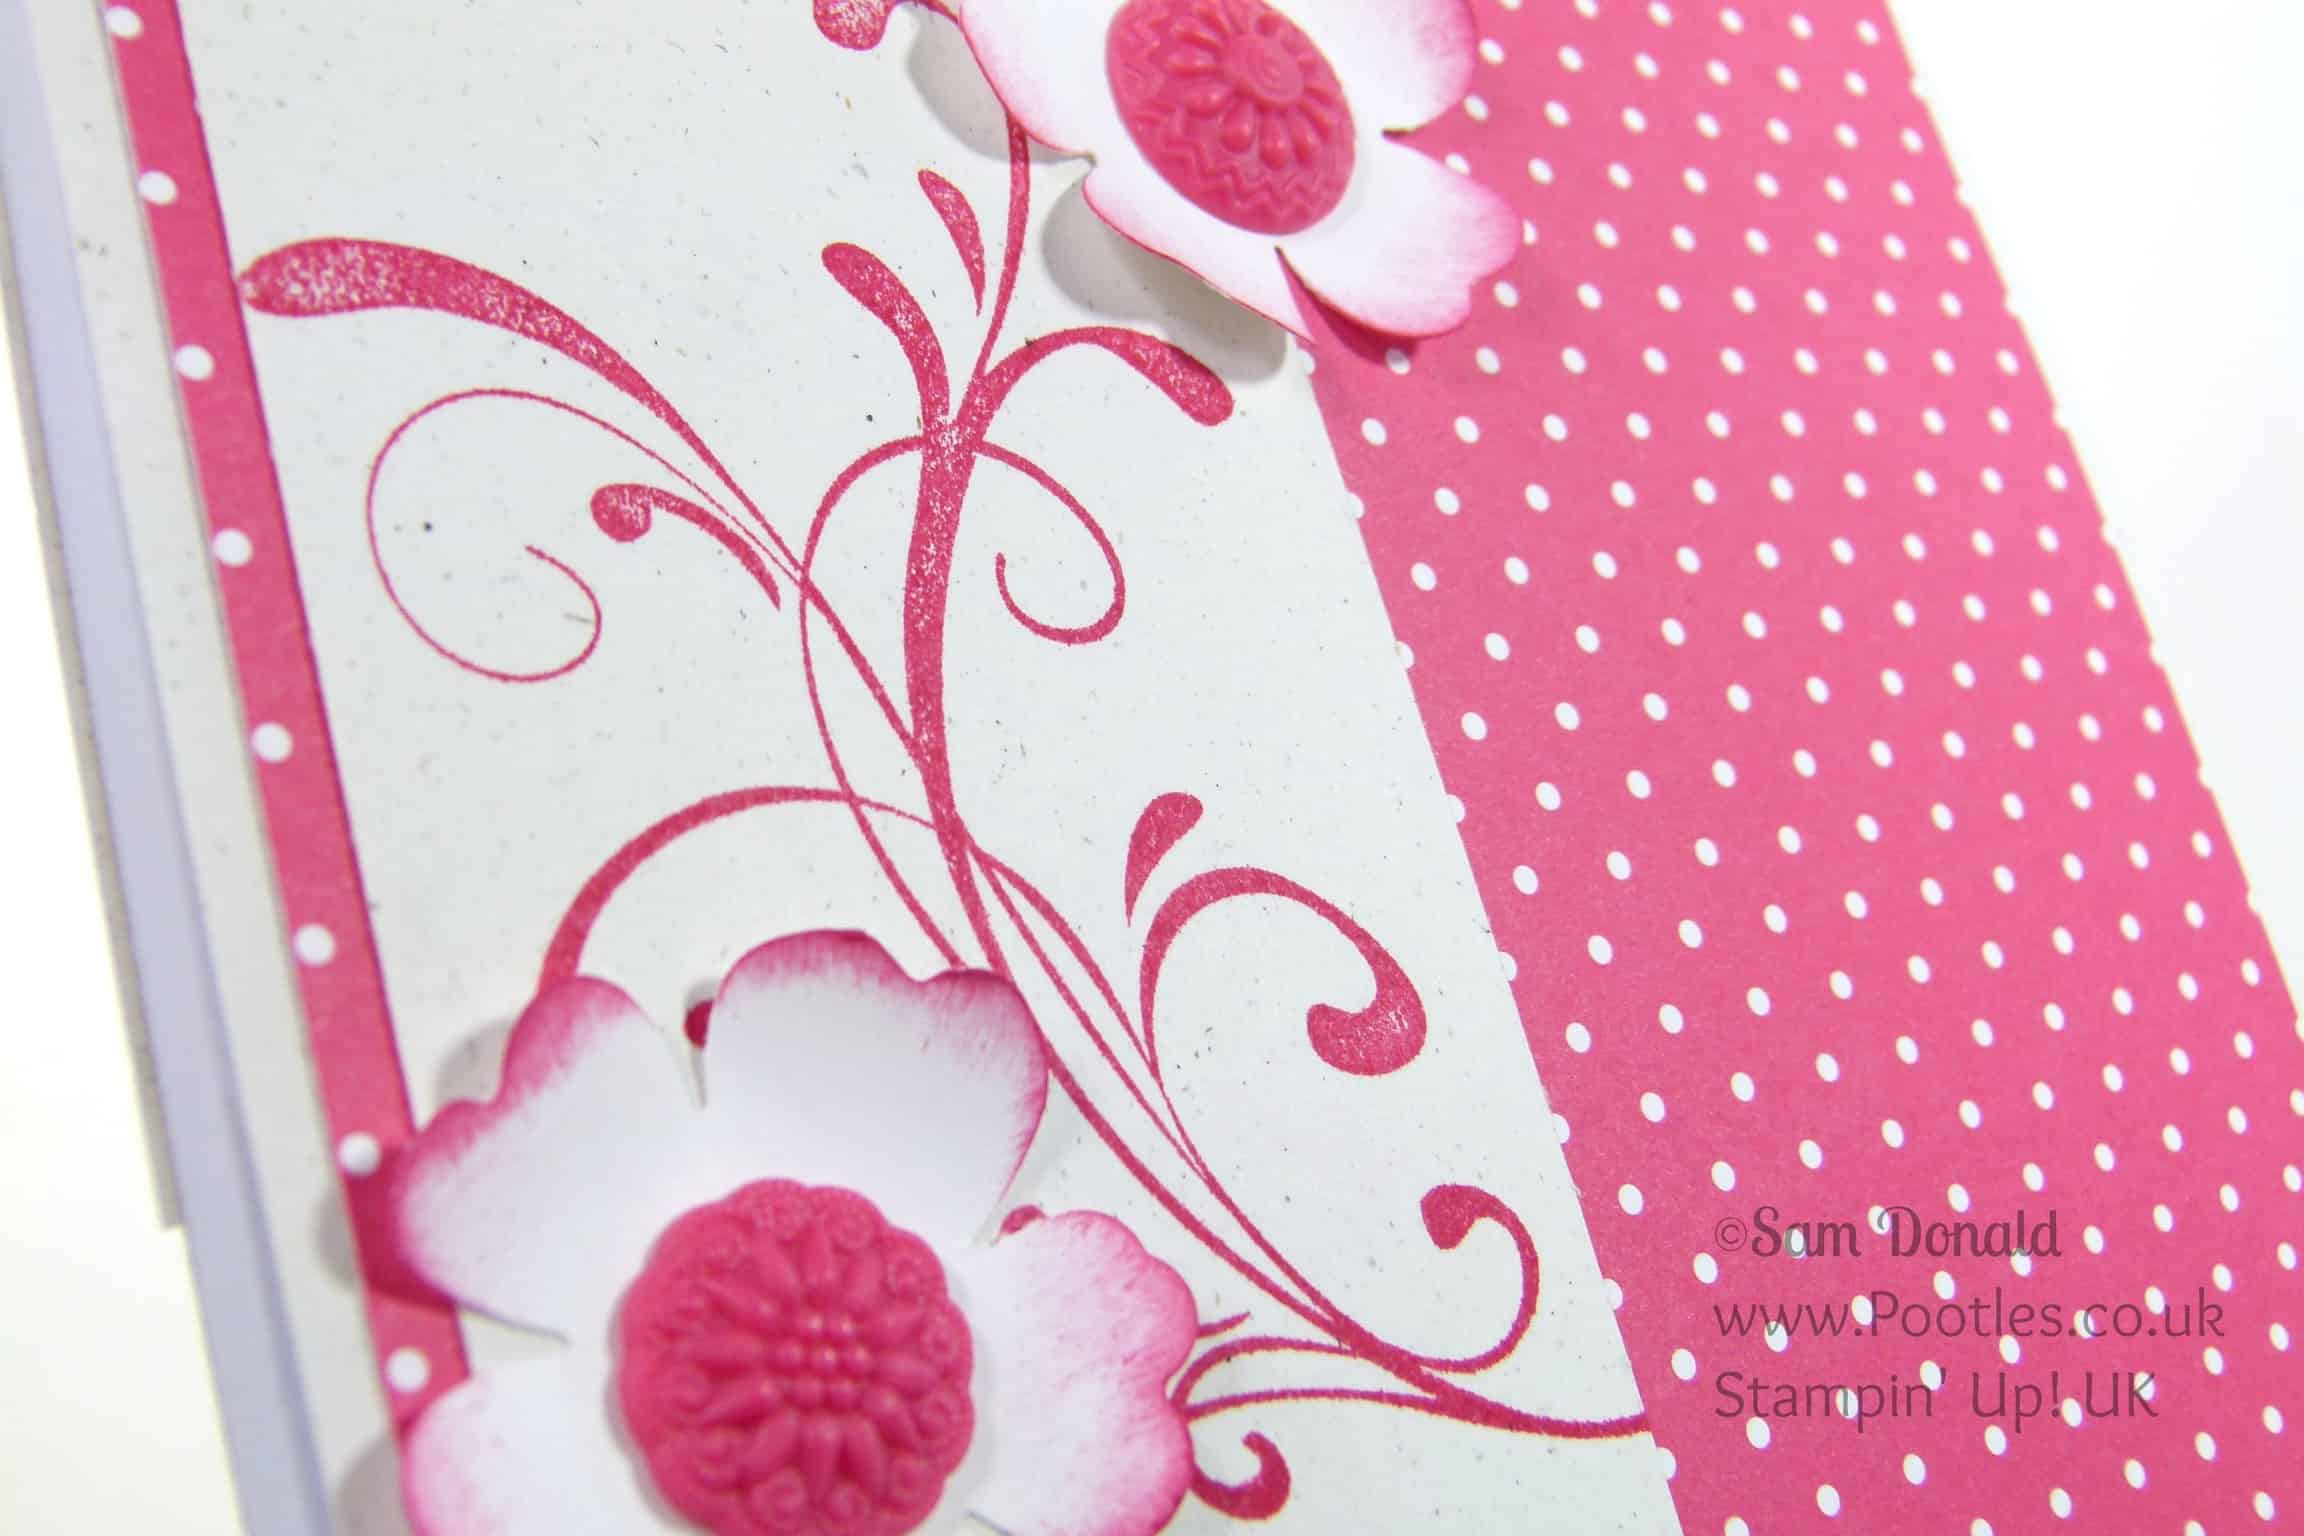 Pootles - Gifts for my new Stampin' Up! UK Demonstrators! Floral Detail